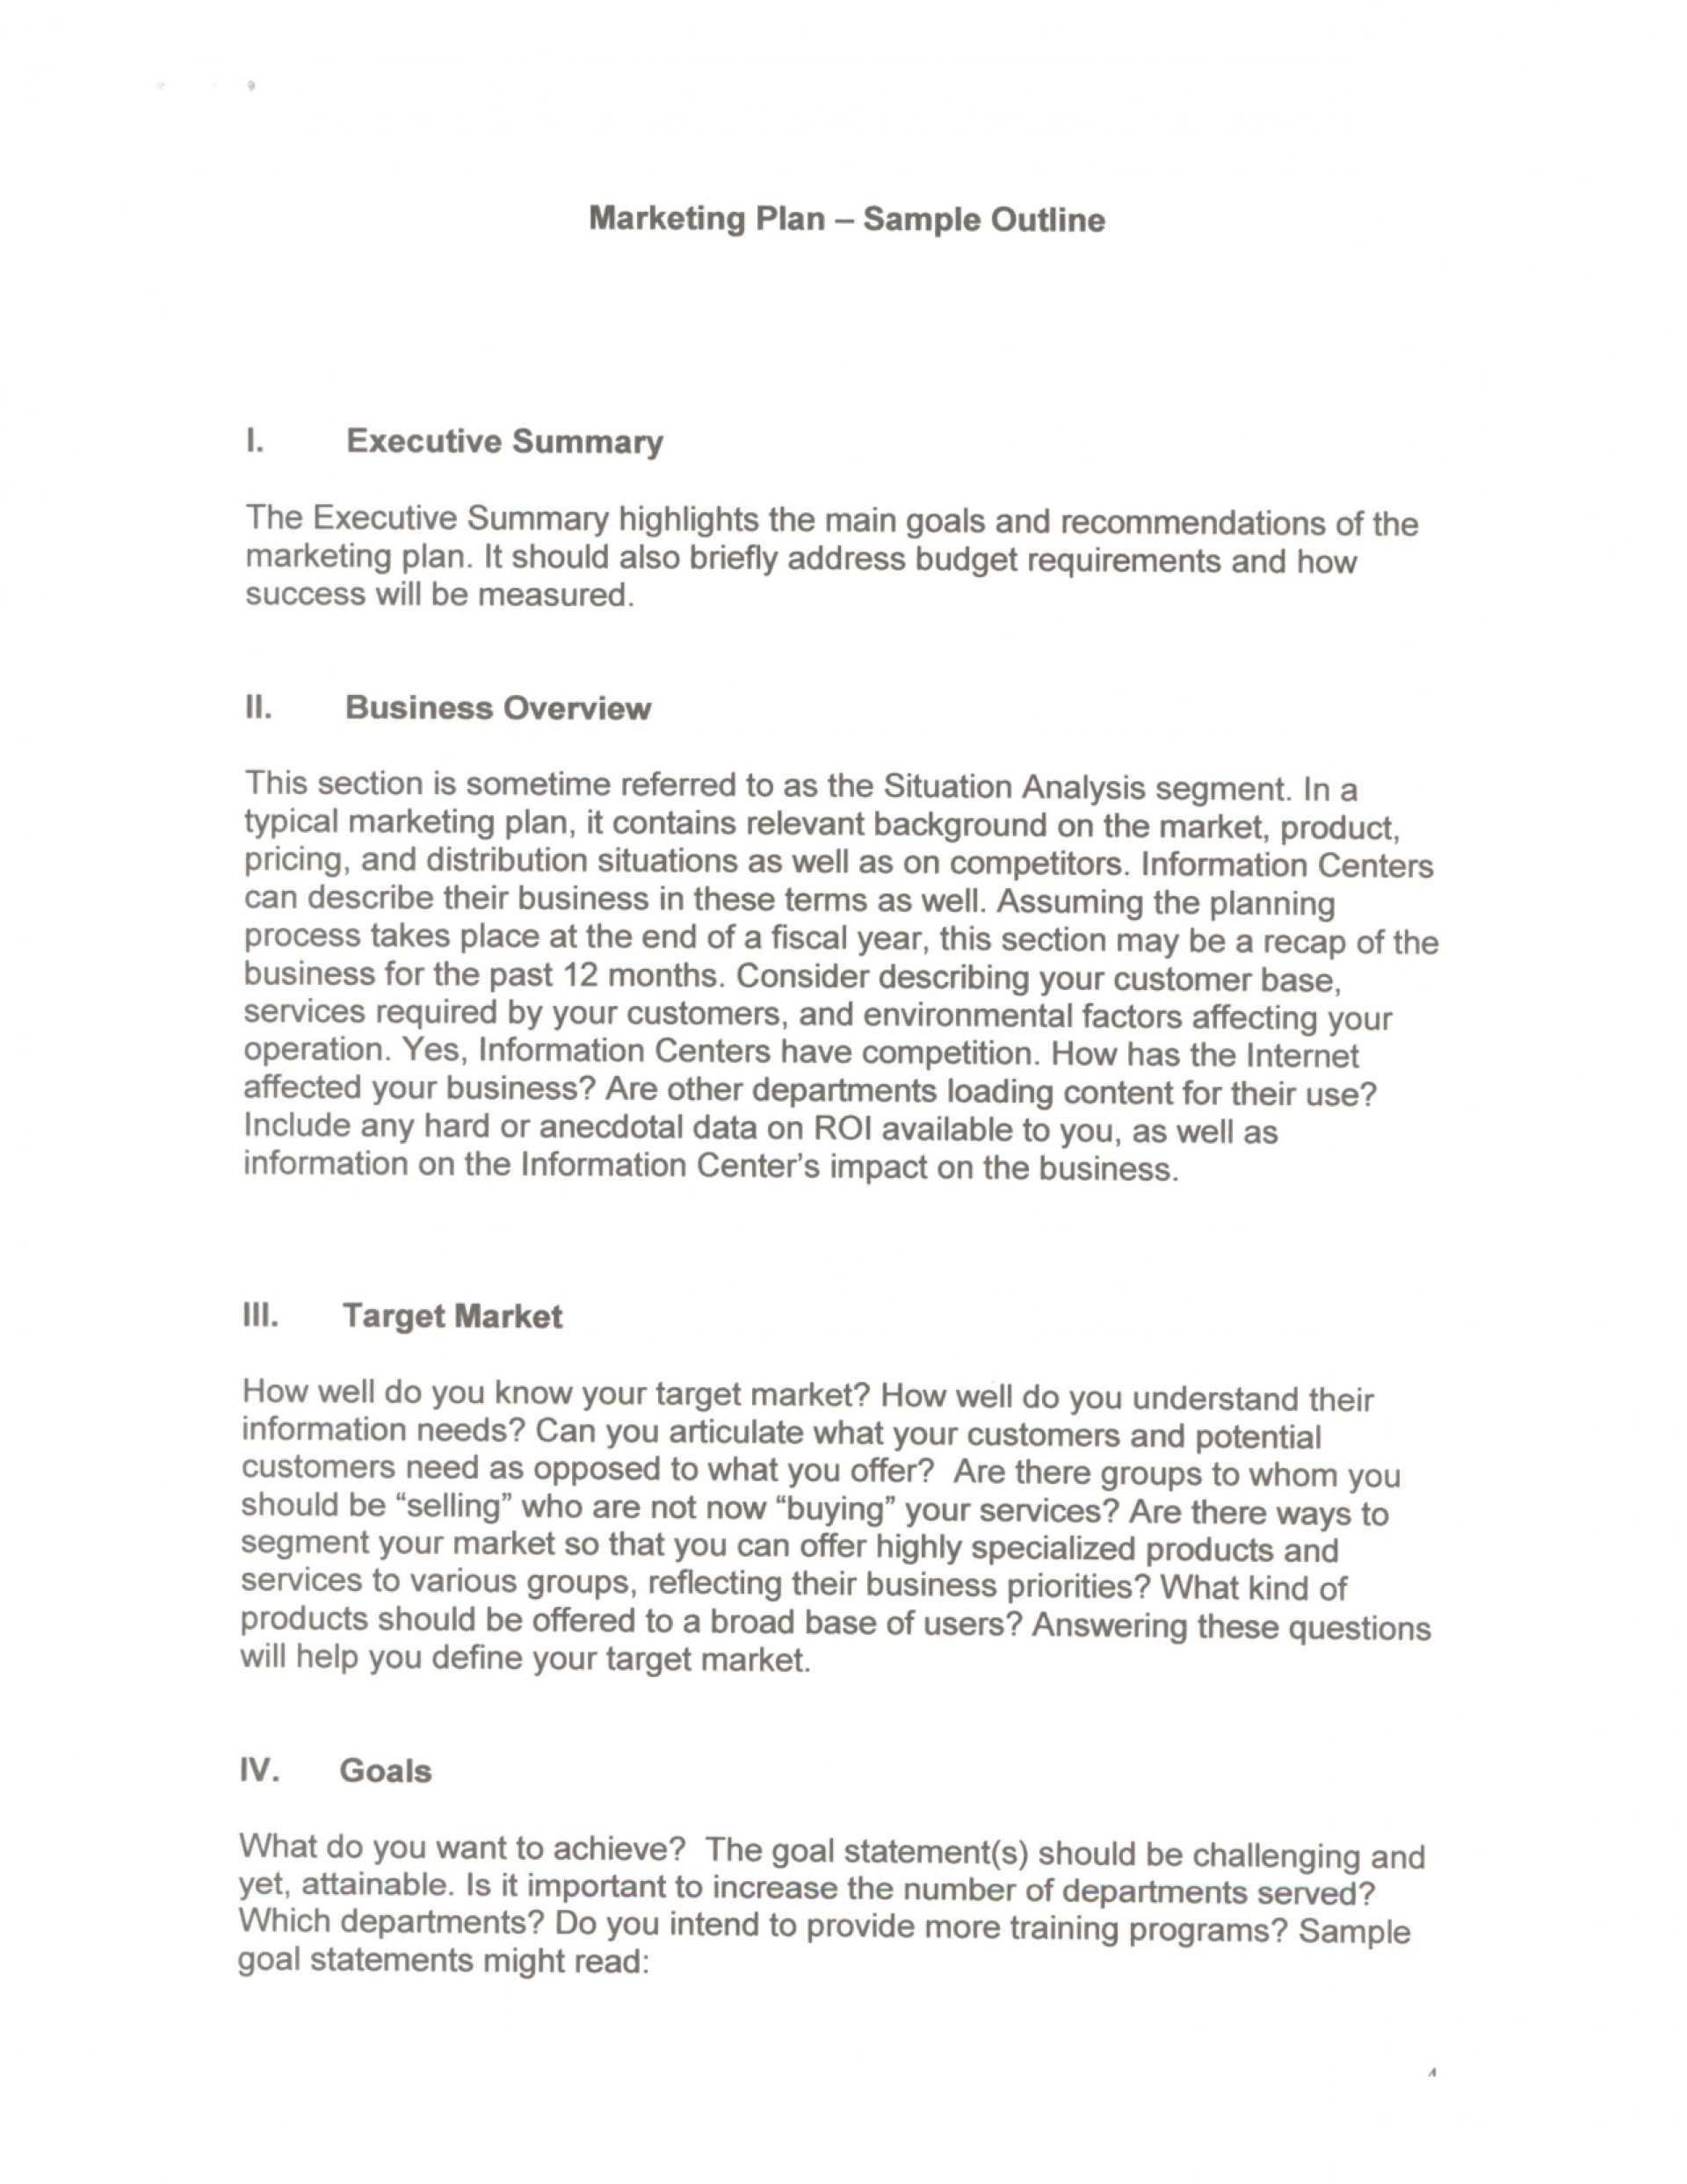 Essay on Marketing Branding | Examples and Samples